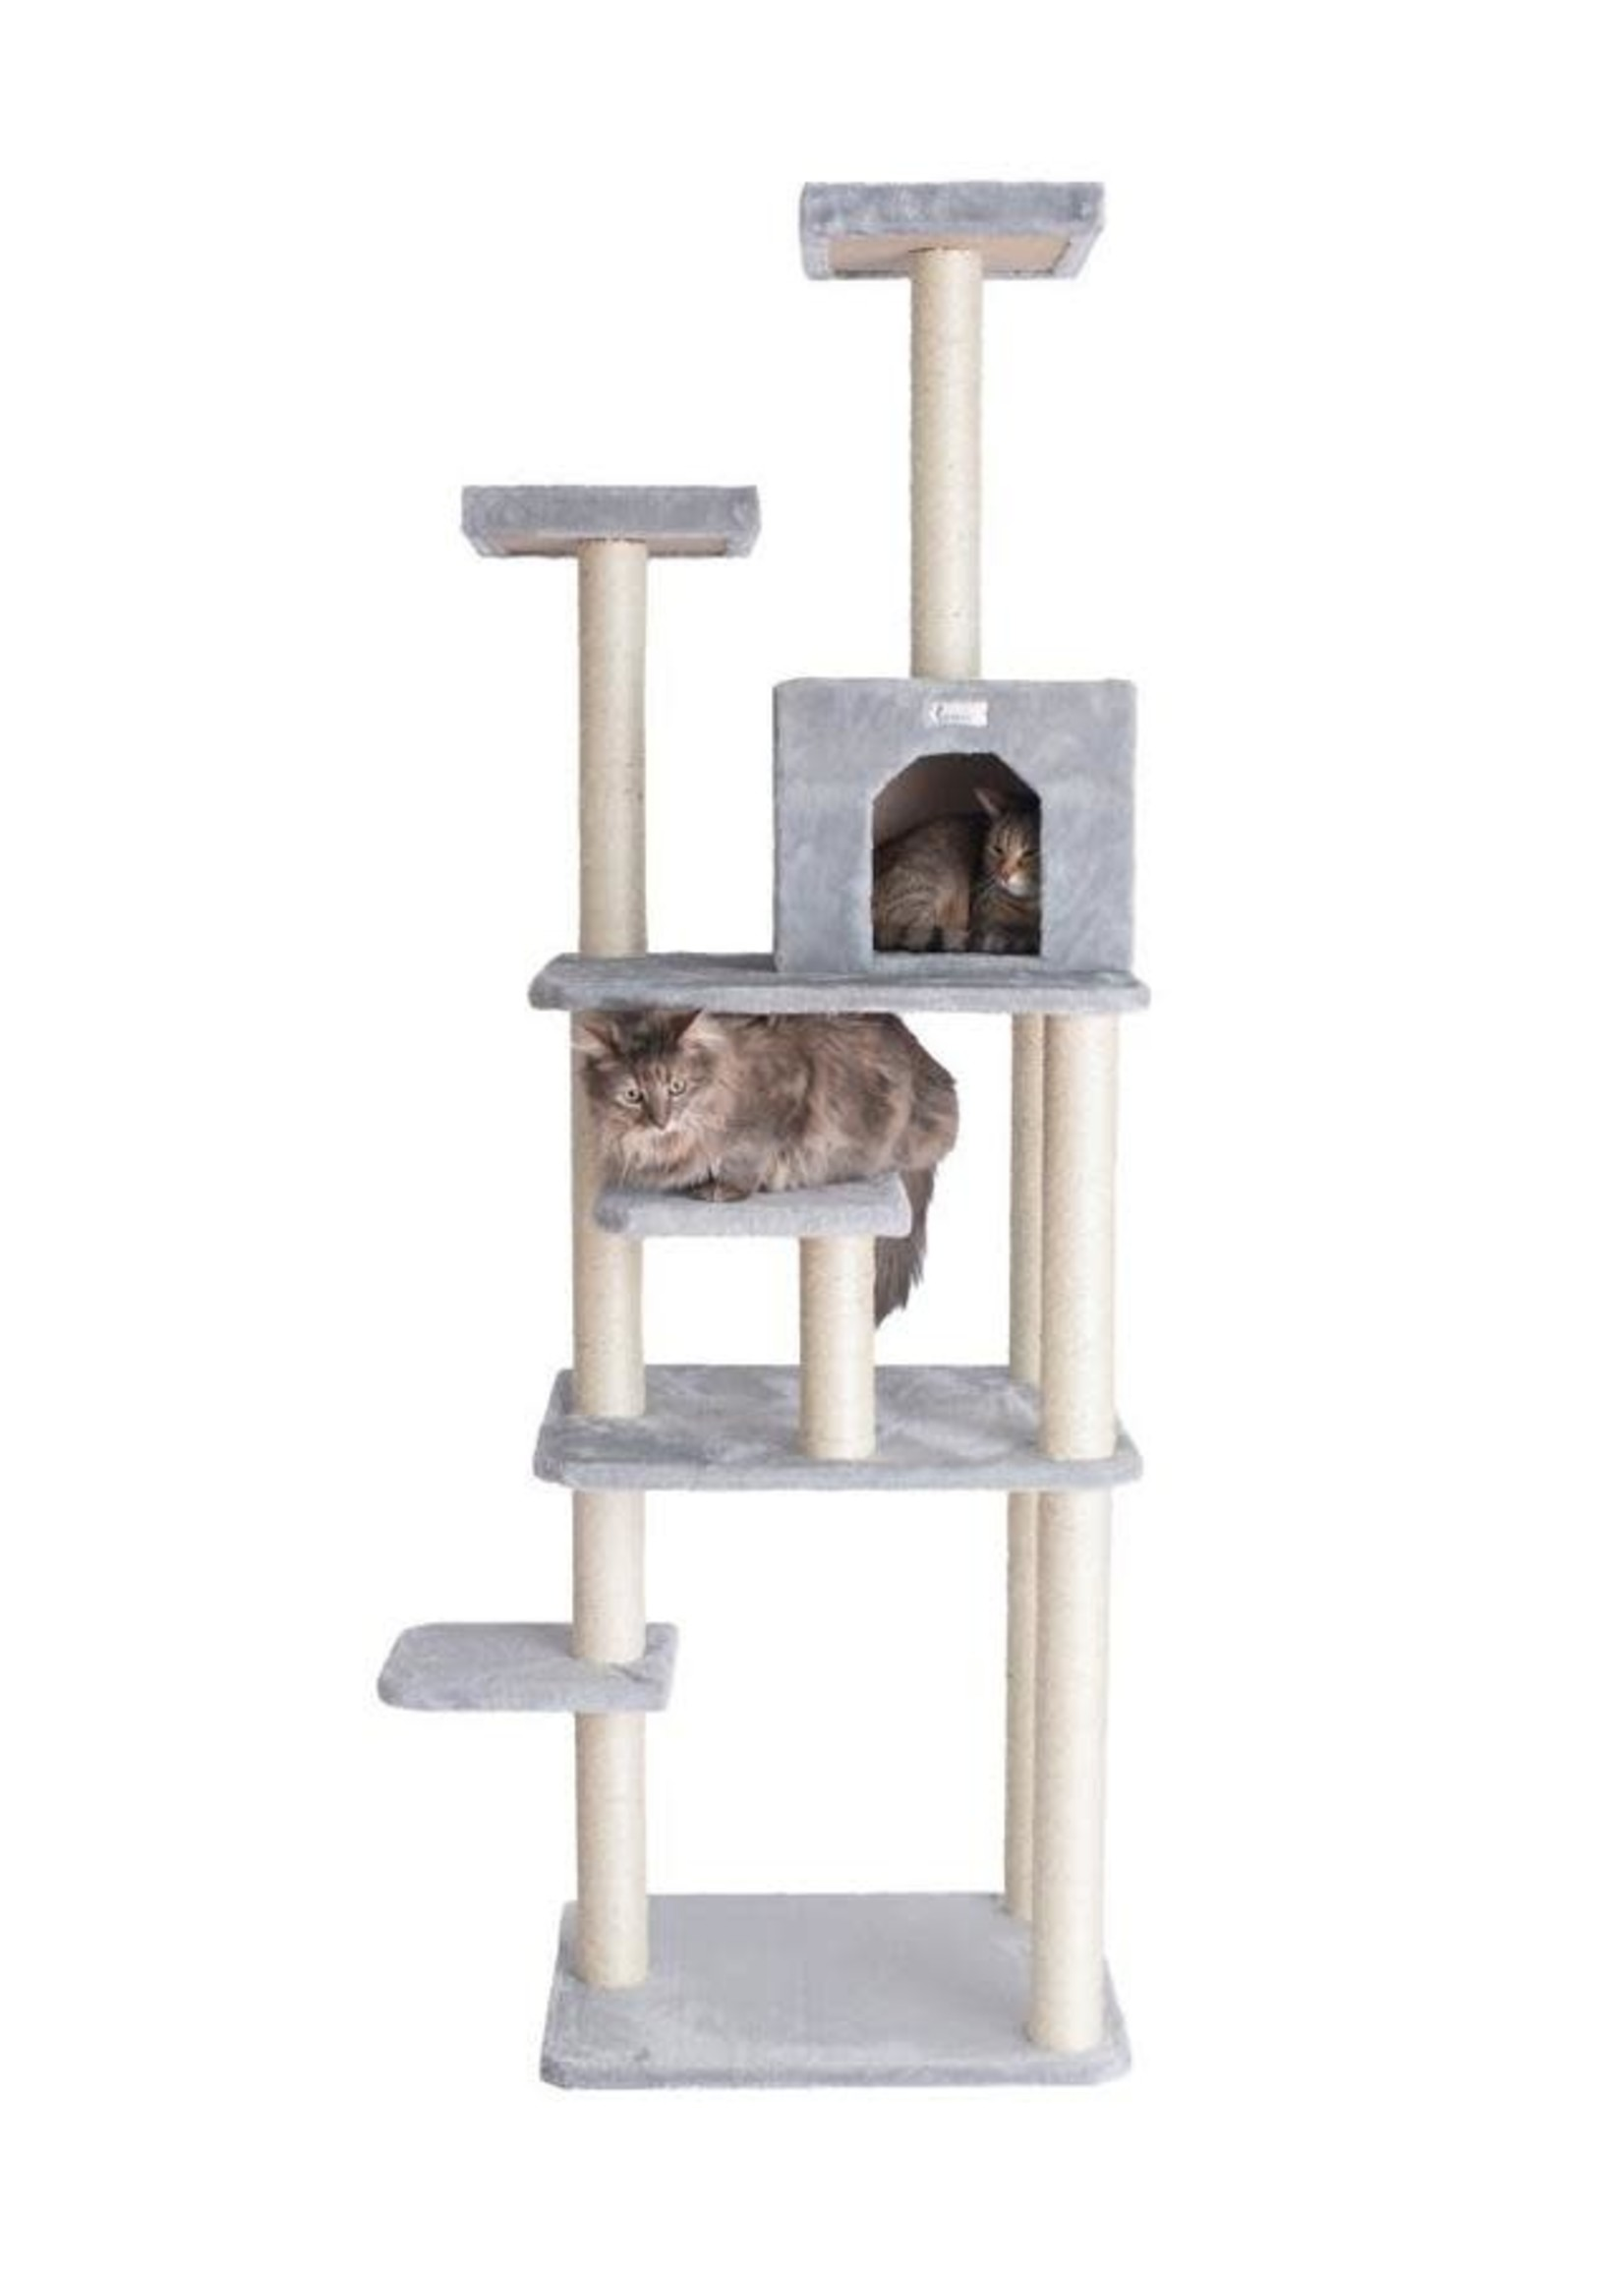 GleePet GleePet GP78740822 74-Inch Cat Tree  With Seven Levels, Silver Gray